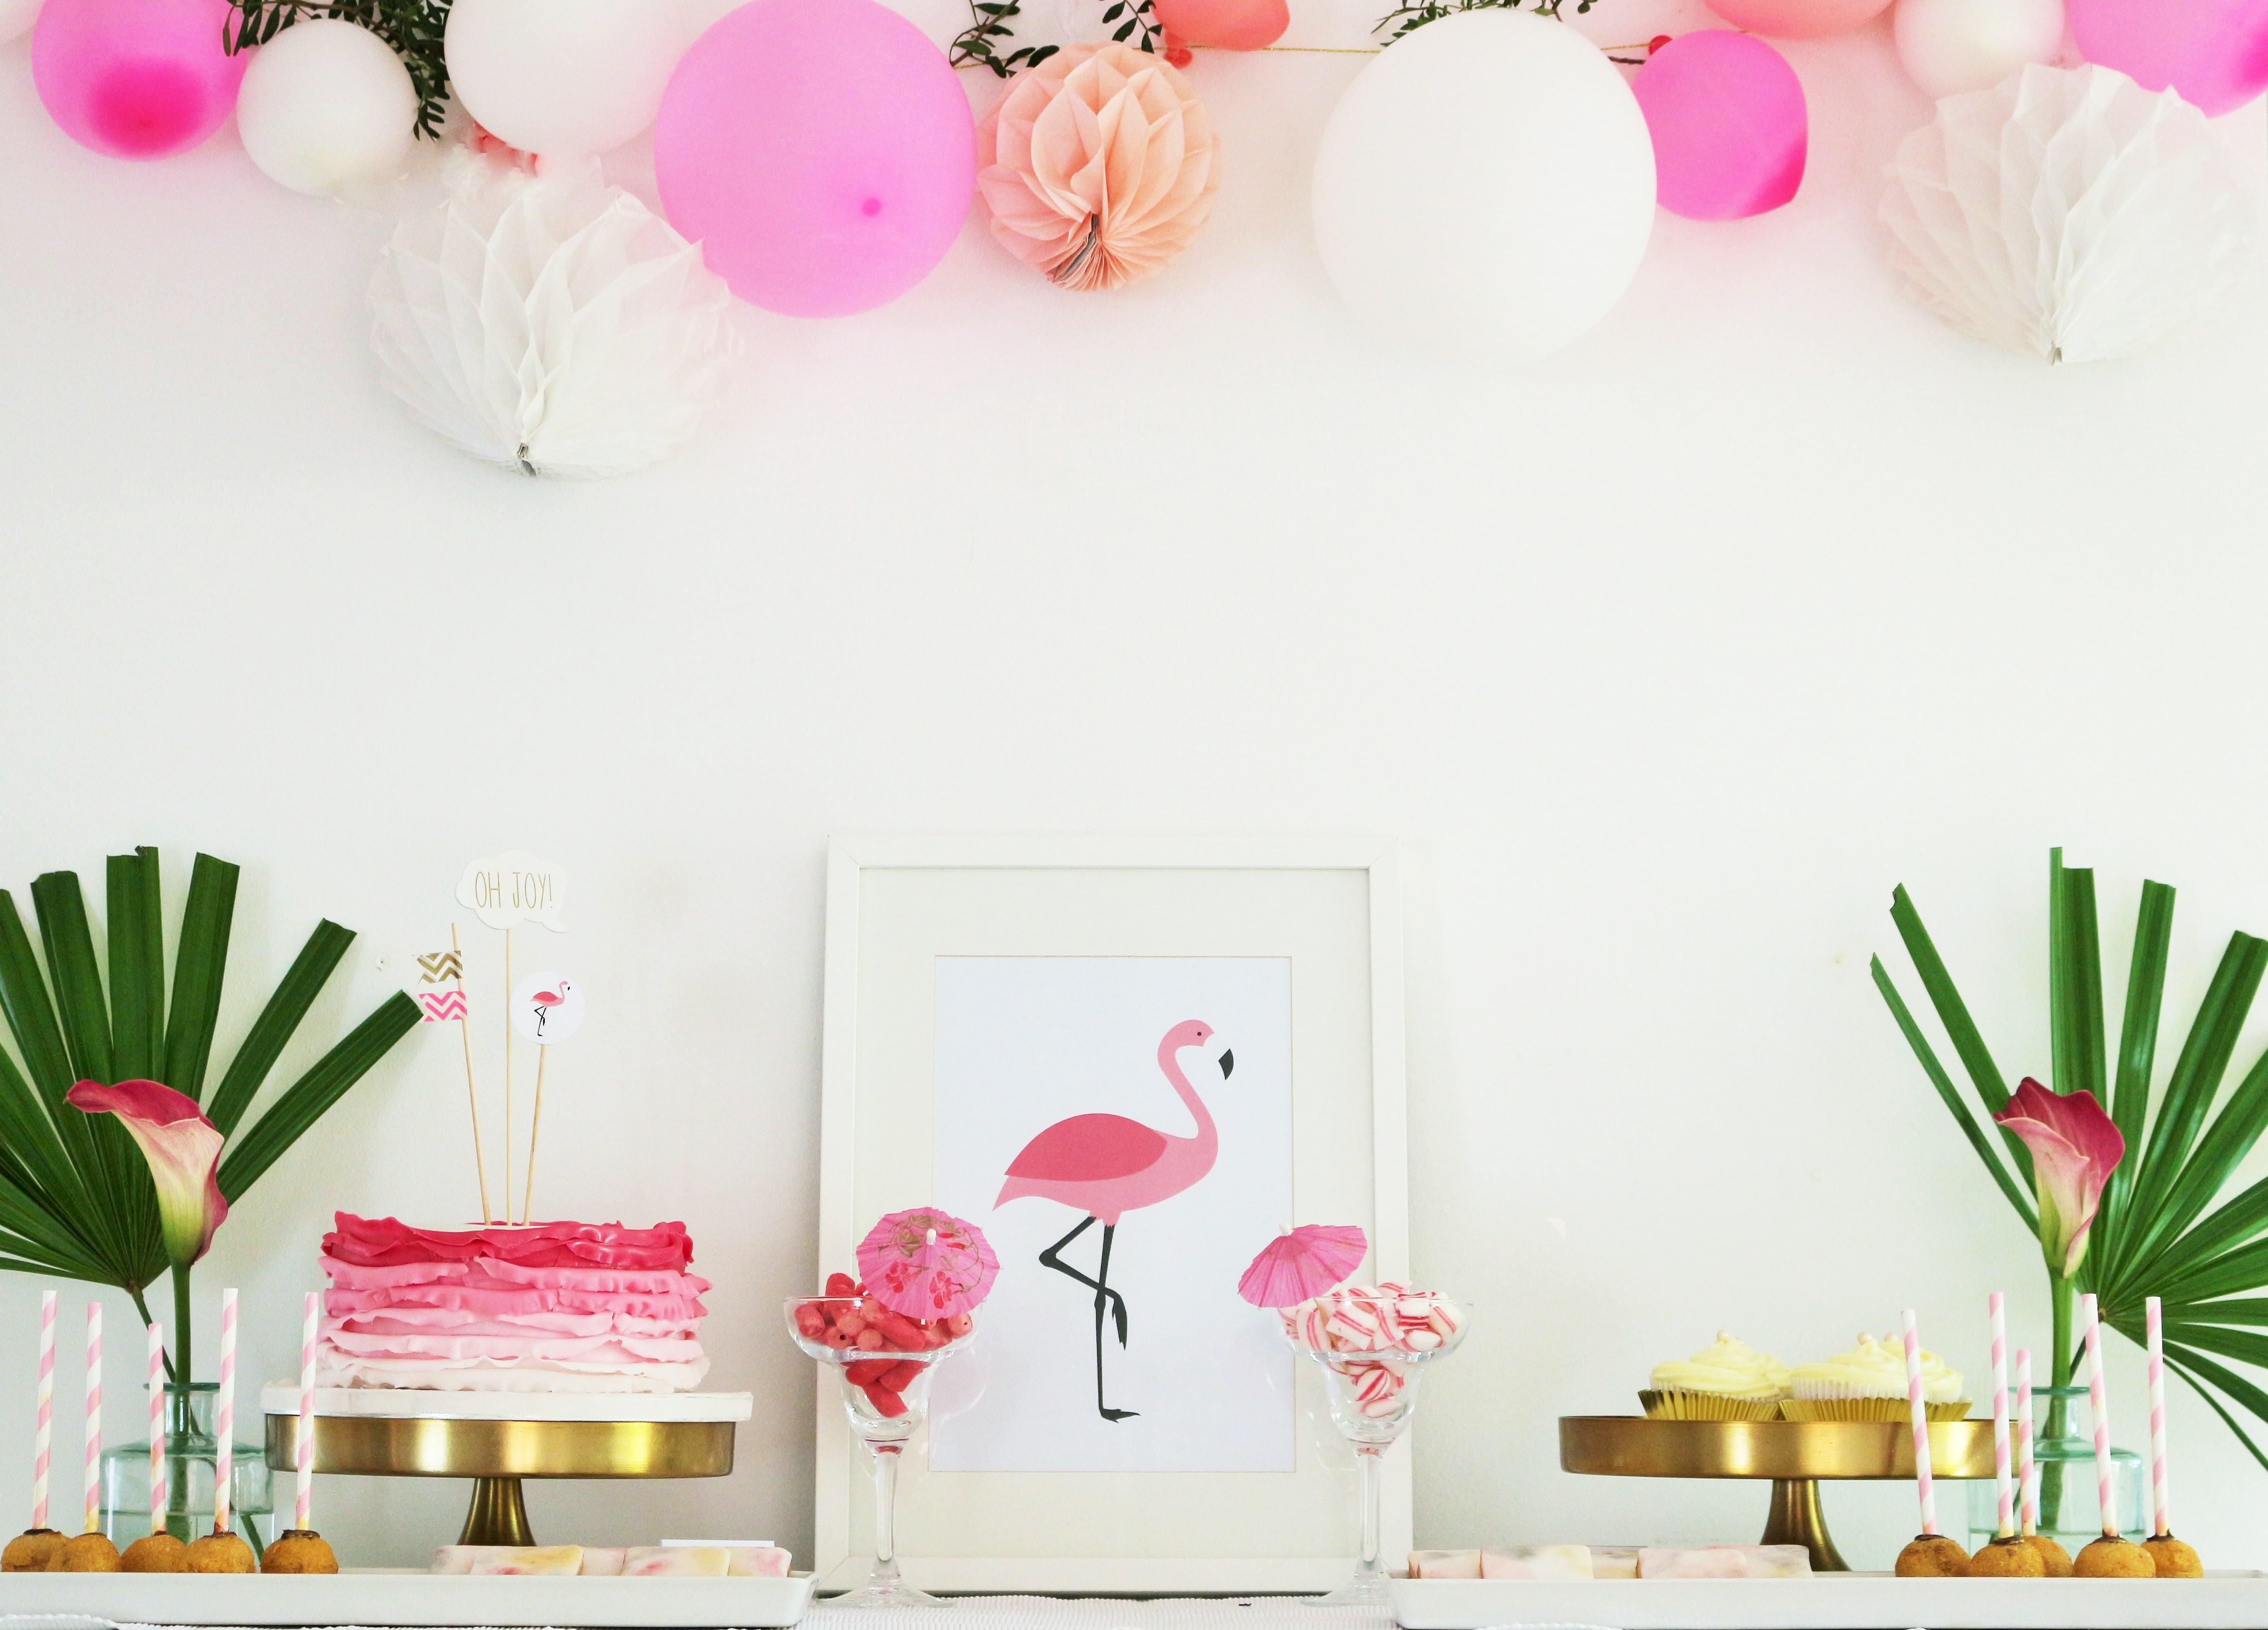 mottoparty im sommer diy und deko ideen f r eine flamingo party partystories blog. Black Bedroom Furniture Sets. Home Design Ideas